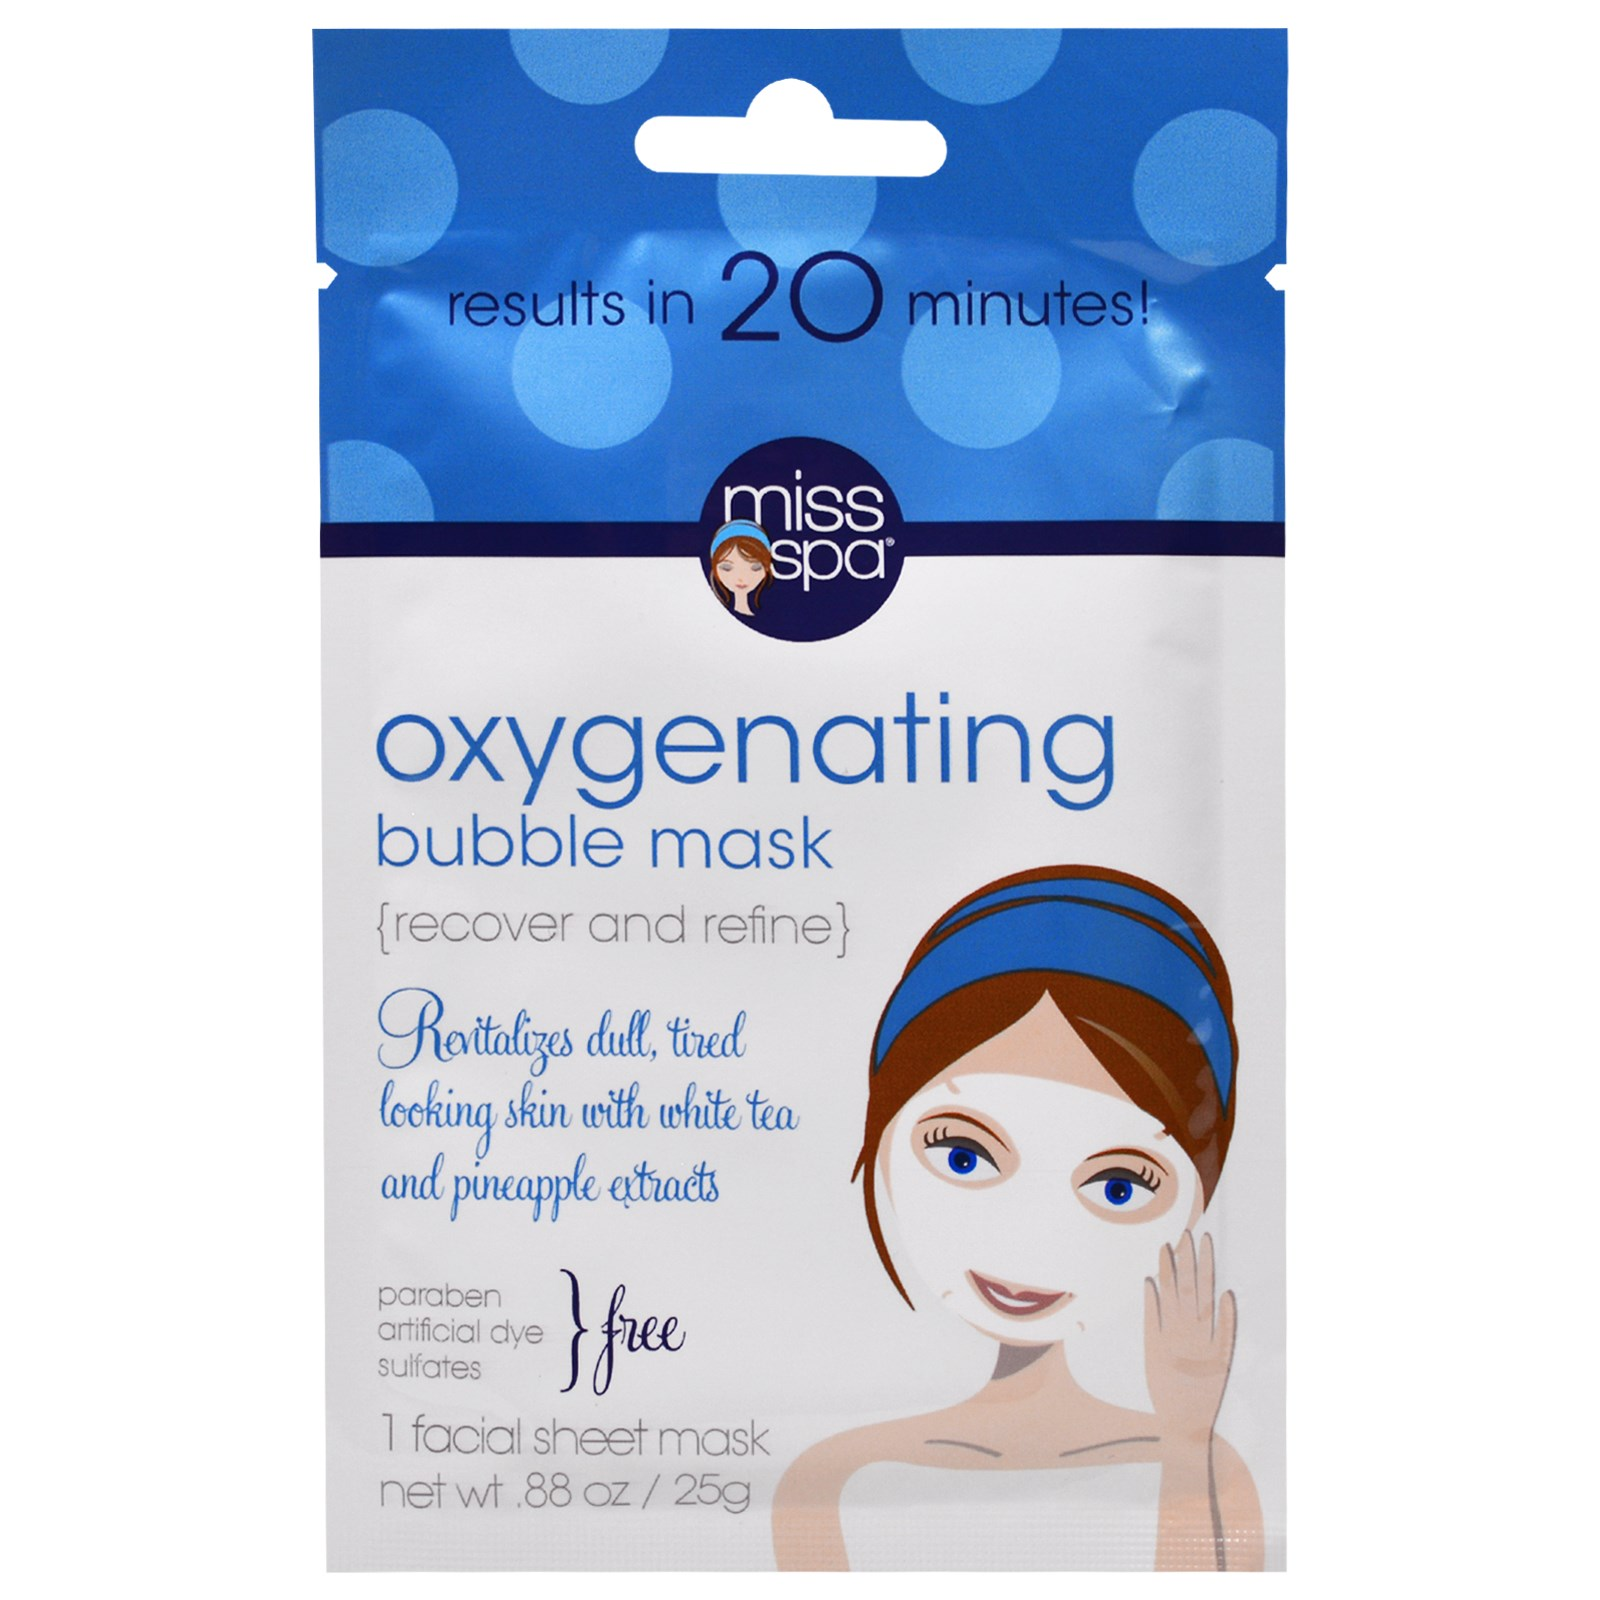 Facial Sheet Mask Oxygenating Bubble - 1 Count by Miss Spa (pack of 3) Aquanil Skin Cleanser 8 oz (Pack of 4)